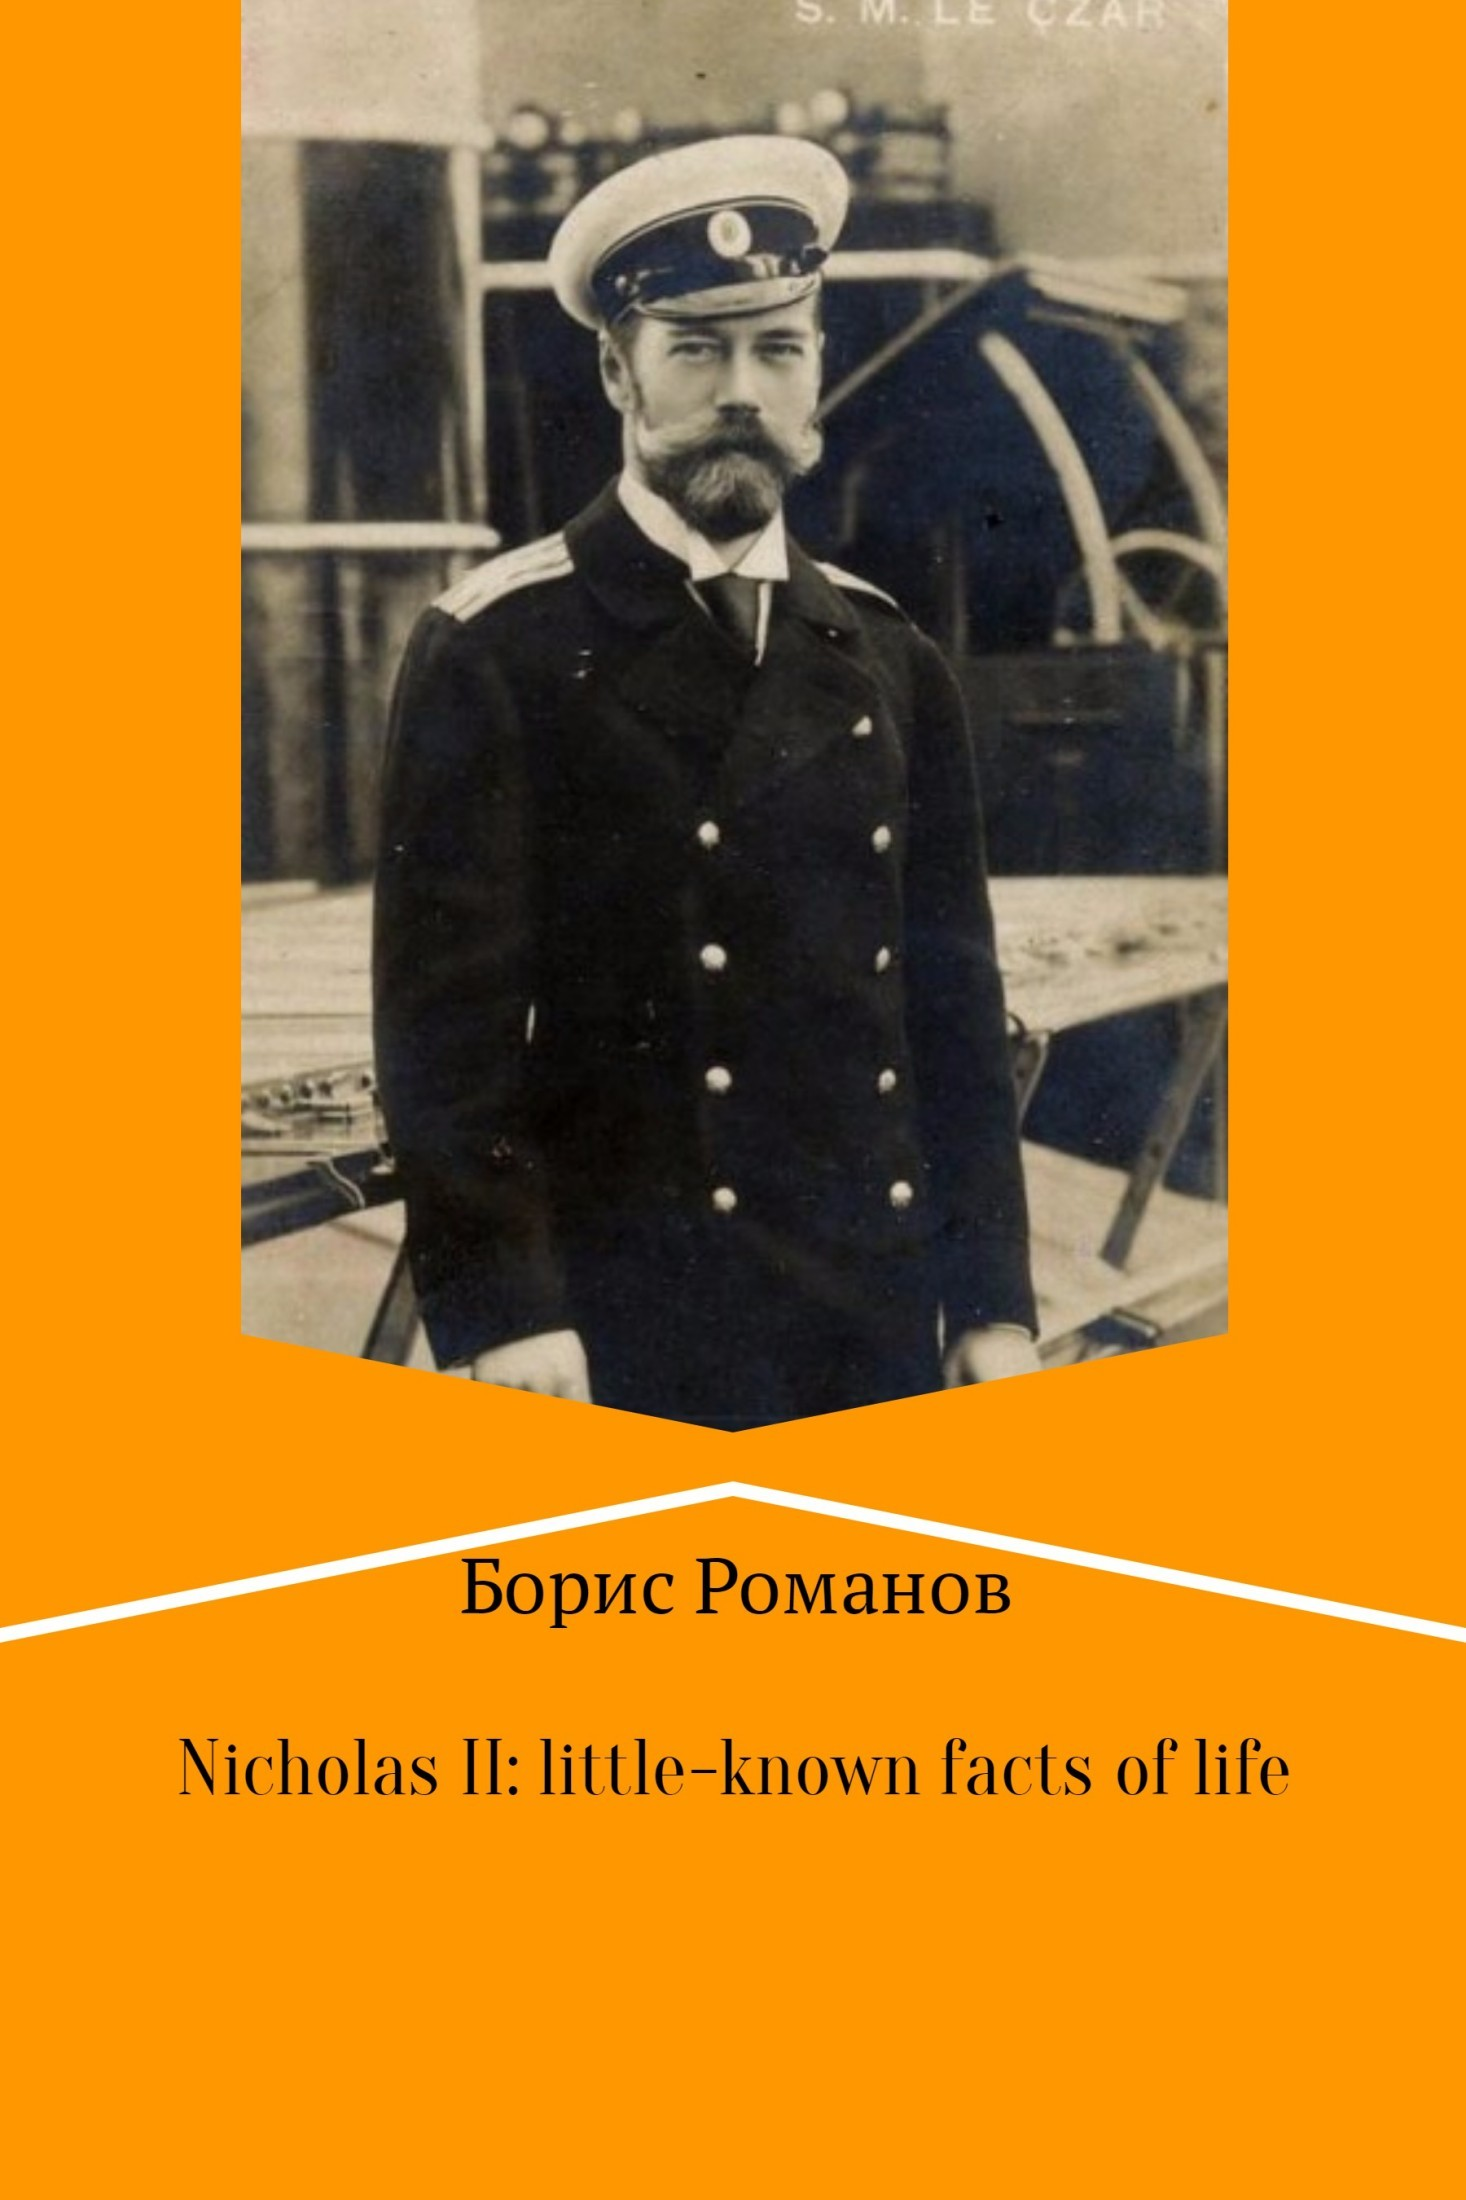 Борис Романов Nicholas II of Russia: little-known facts of life cd iron maiden a matter of life and death